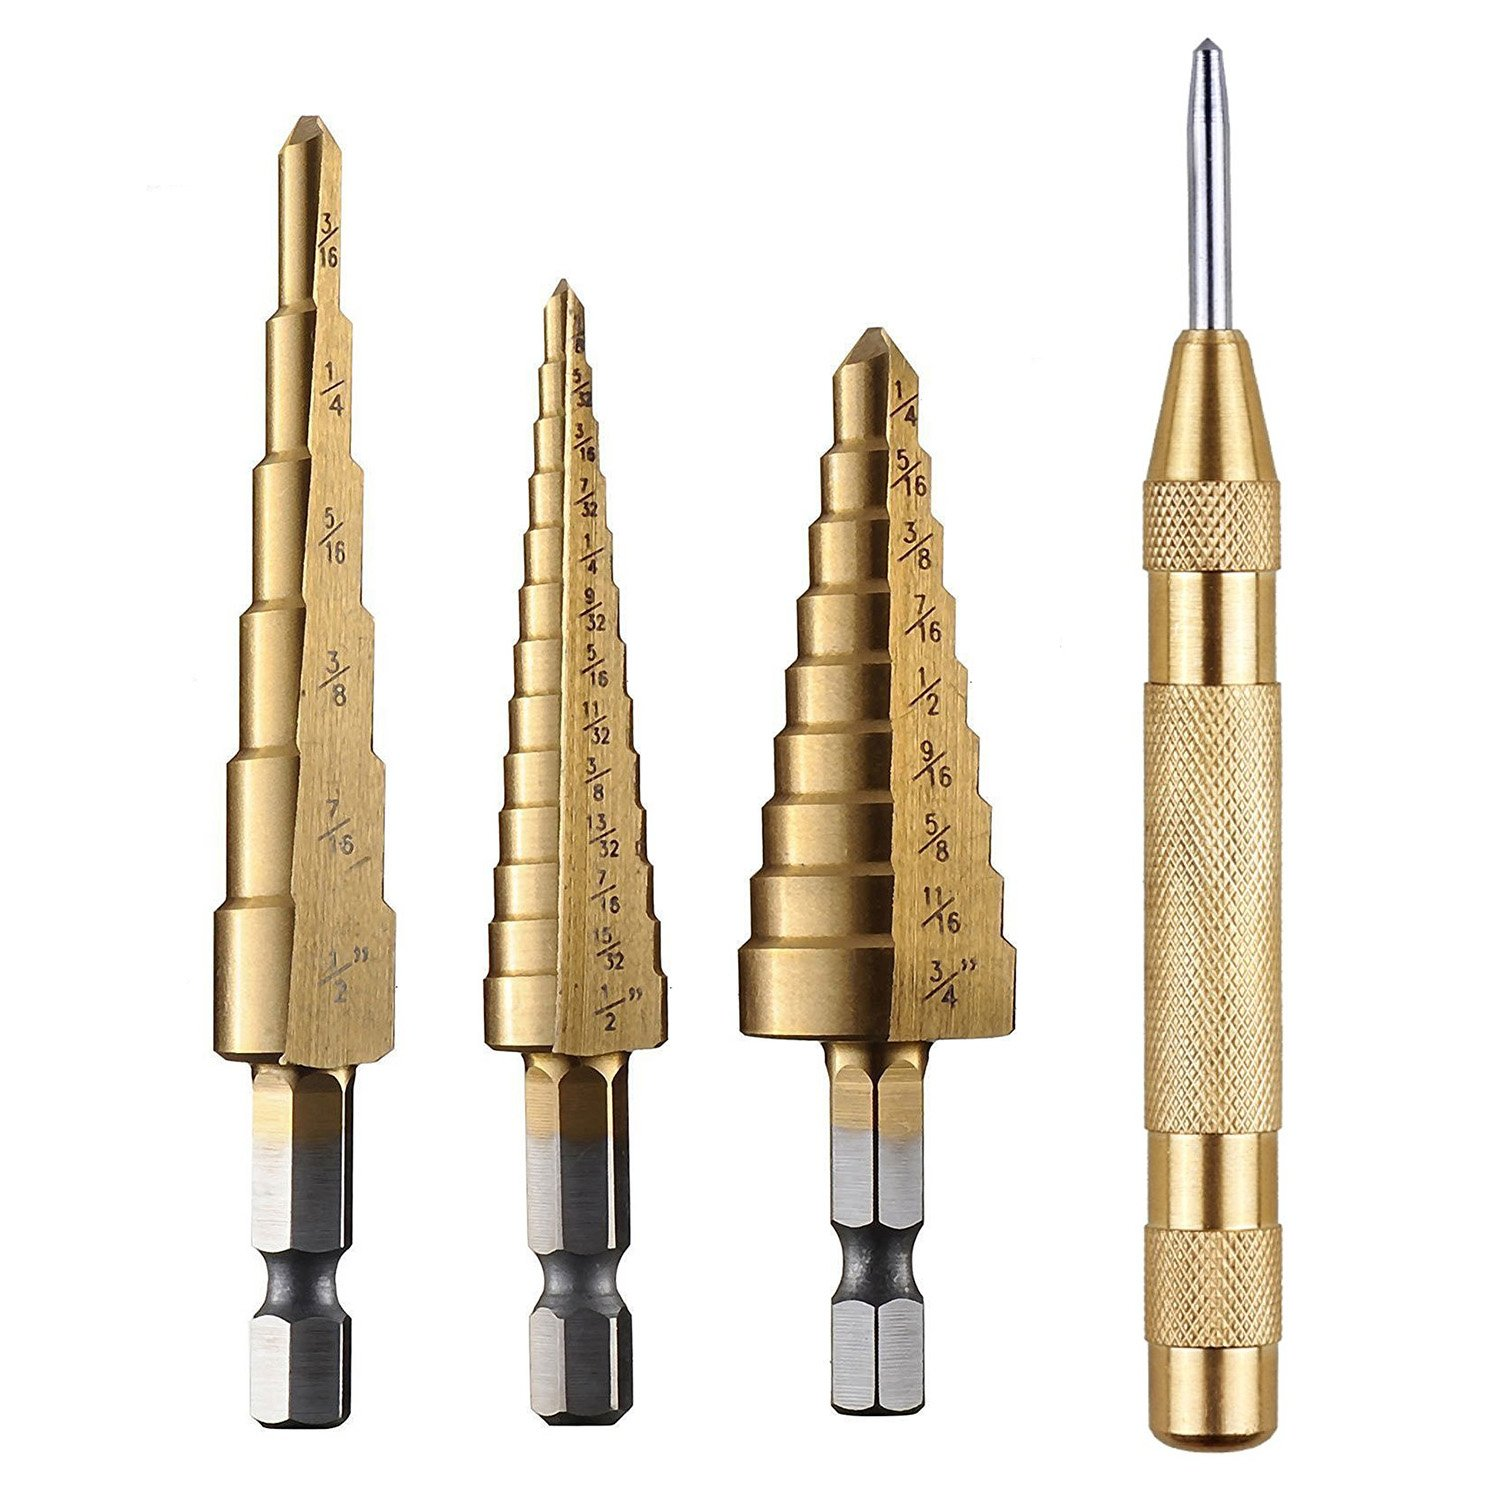 "WElinks 3Pcs Titanium Step Drill Bit Set, HSS Steel Step Cone Drill Bits Set Hole Cutter with Automatic Center Punch, 1/4"" Hex Shank Quick Change Woodworking Tools(3/16""-1/2"", 1/4""-3/4"", 1/8""-1/2"")"